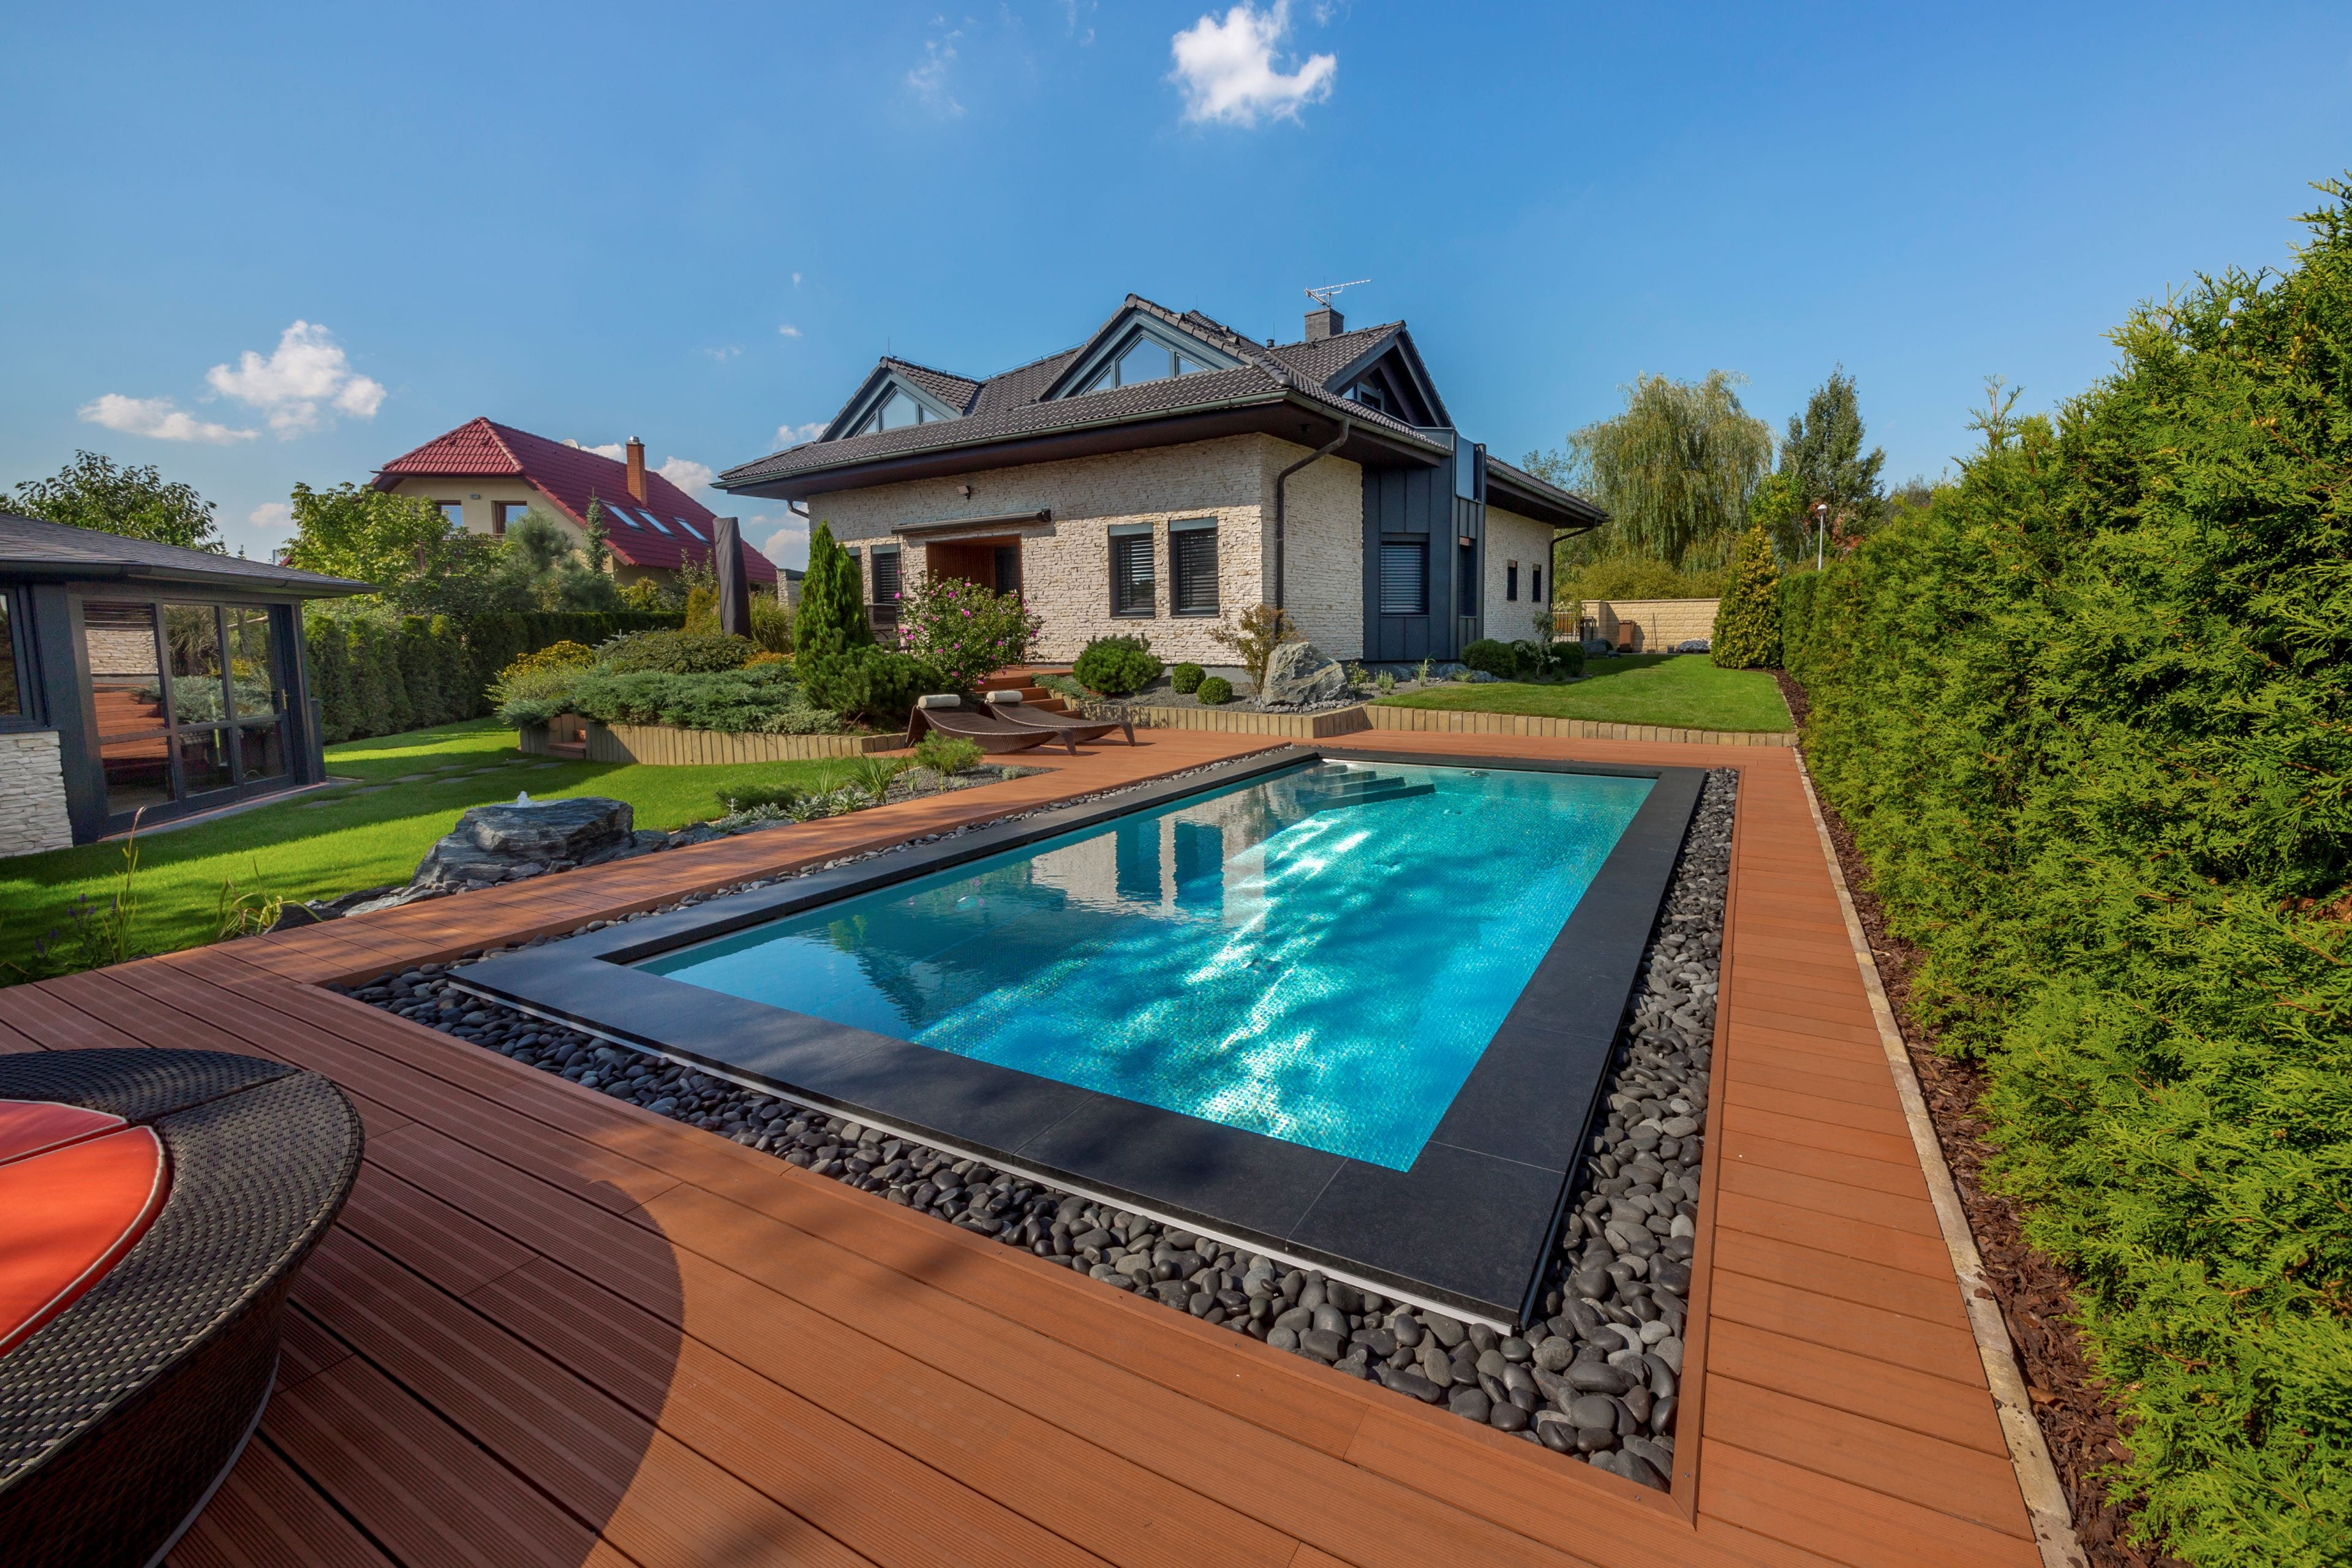 Stainless-steel pool with pebble overflow